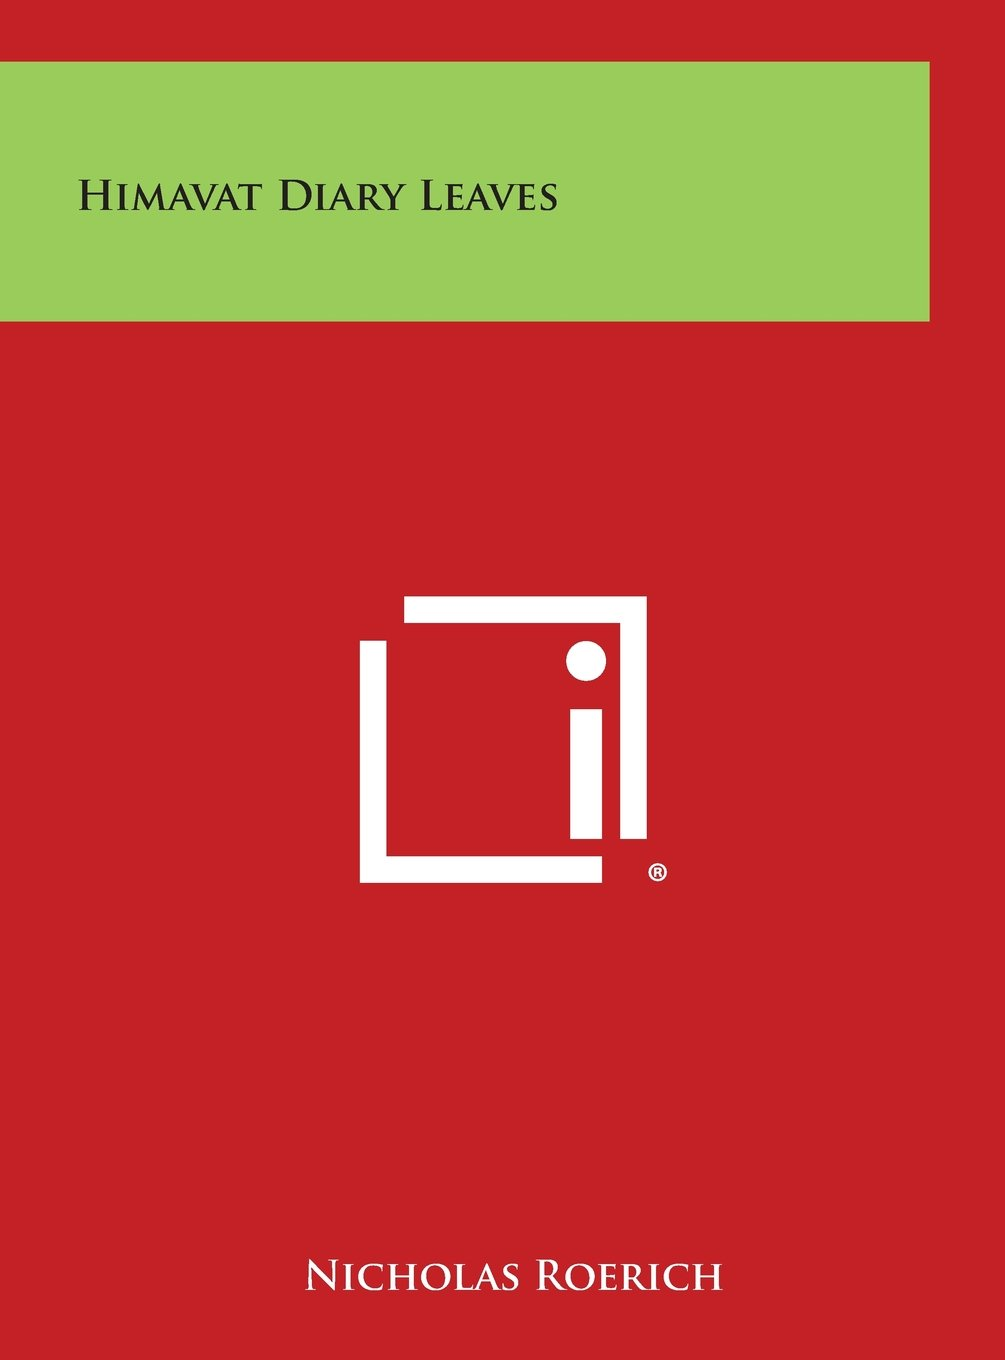 Buy Himavat Diary Leaves Book Online at Low Prices in India | Himavat Diary  Leaves Reviews & Ratings - Amazon.in